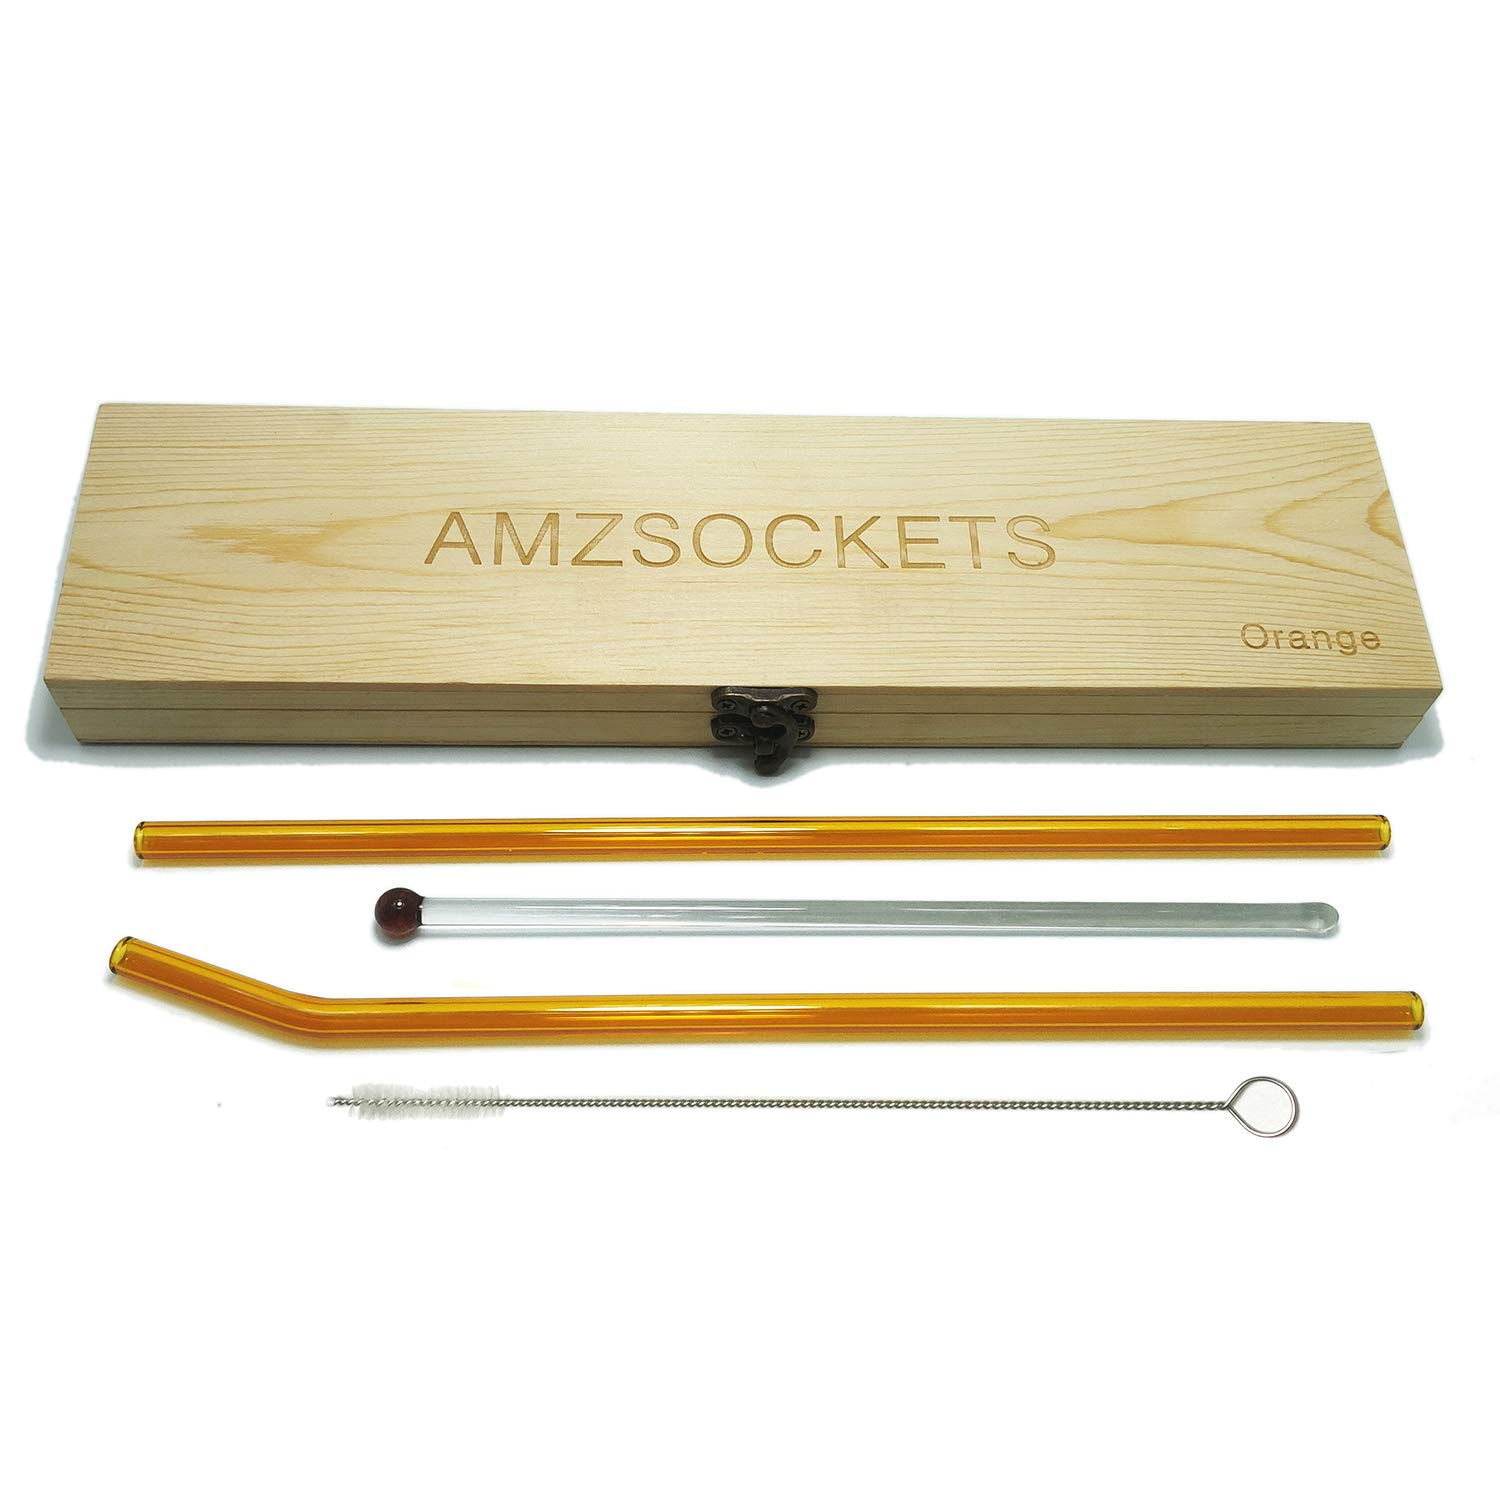 AMZSOCKETS Glass Straws Private Wood Box Multi Color 10inchs X 8mm Reusable Drinking Straw Case Set Perfect for Home, Office or Gift - Green, Orange, Purple, Blue (Orange)